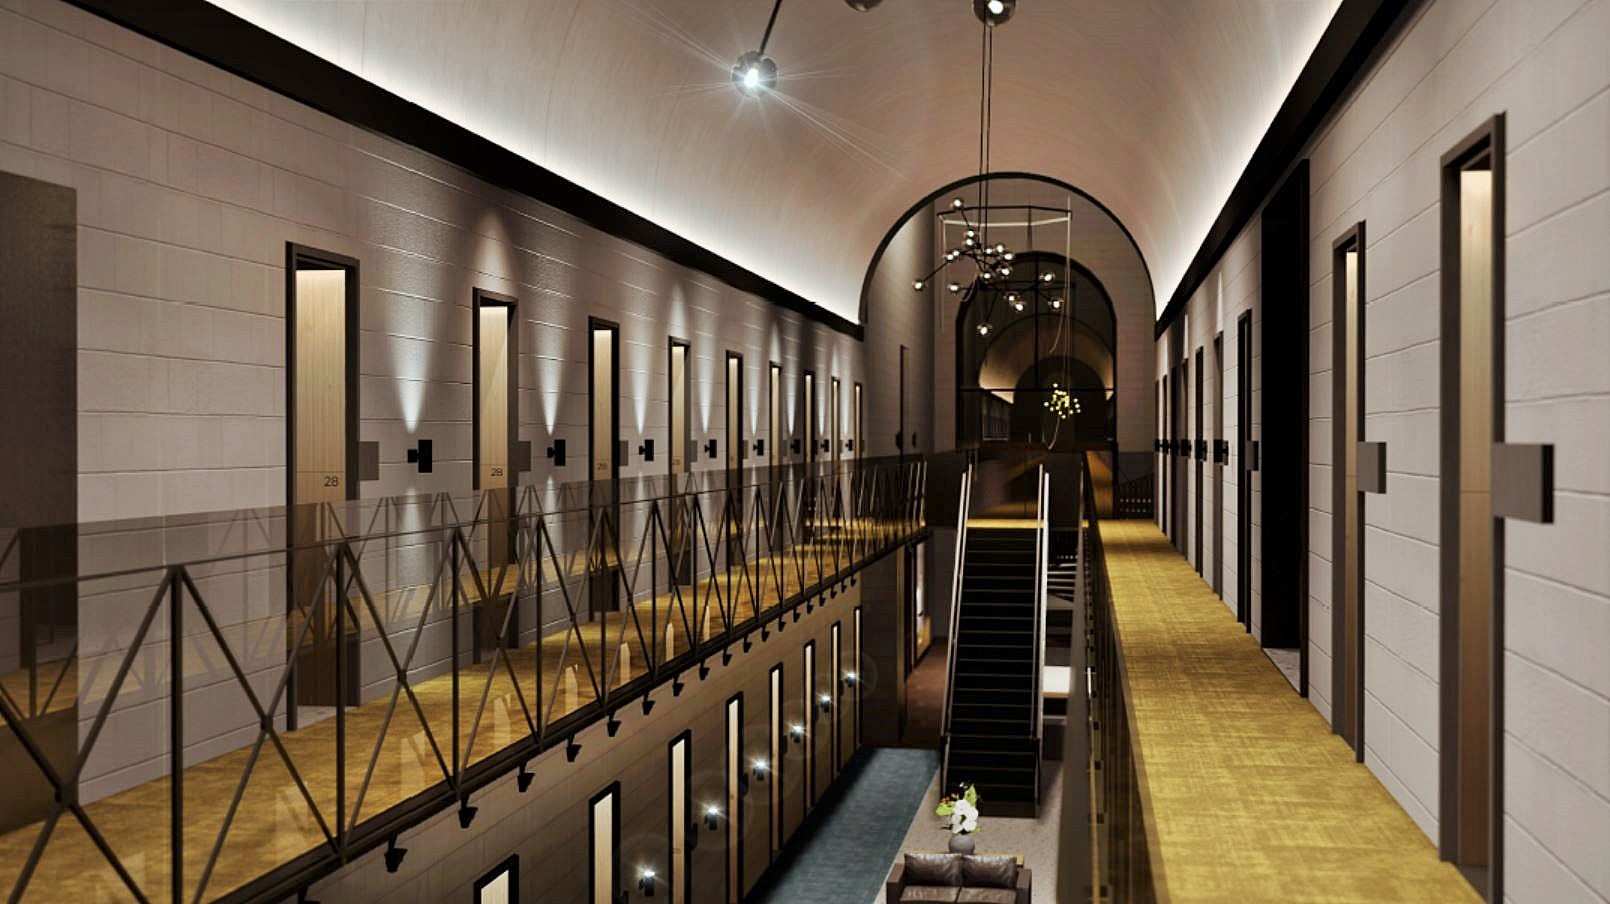 TFE Hotels offerS guests the chance to stay in a real converted prison! — the Adina Apartment Hotel Pentridge, Melbourne